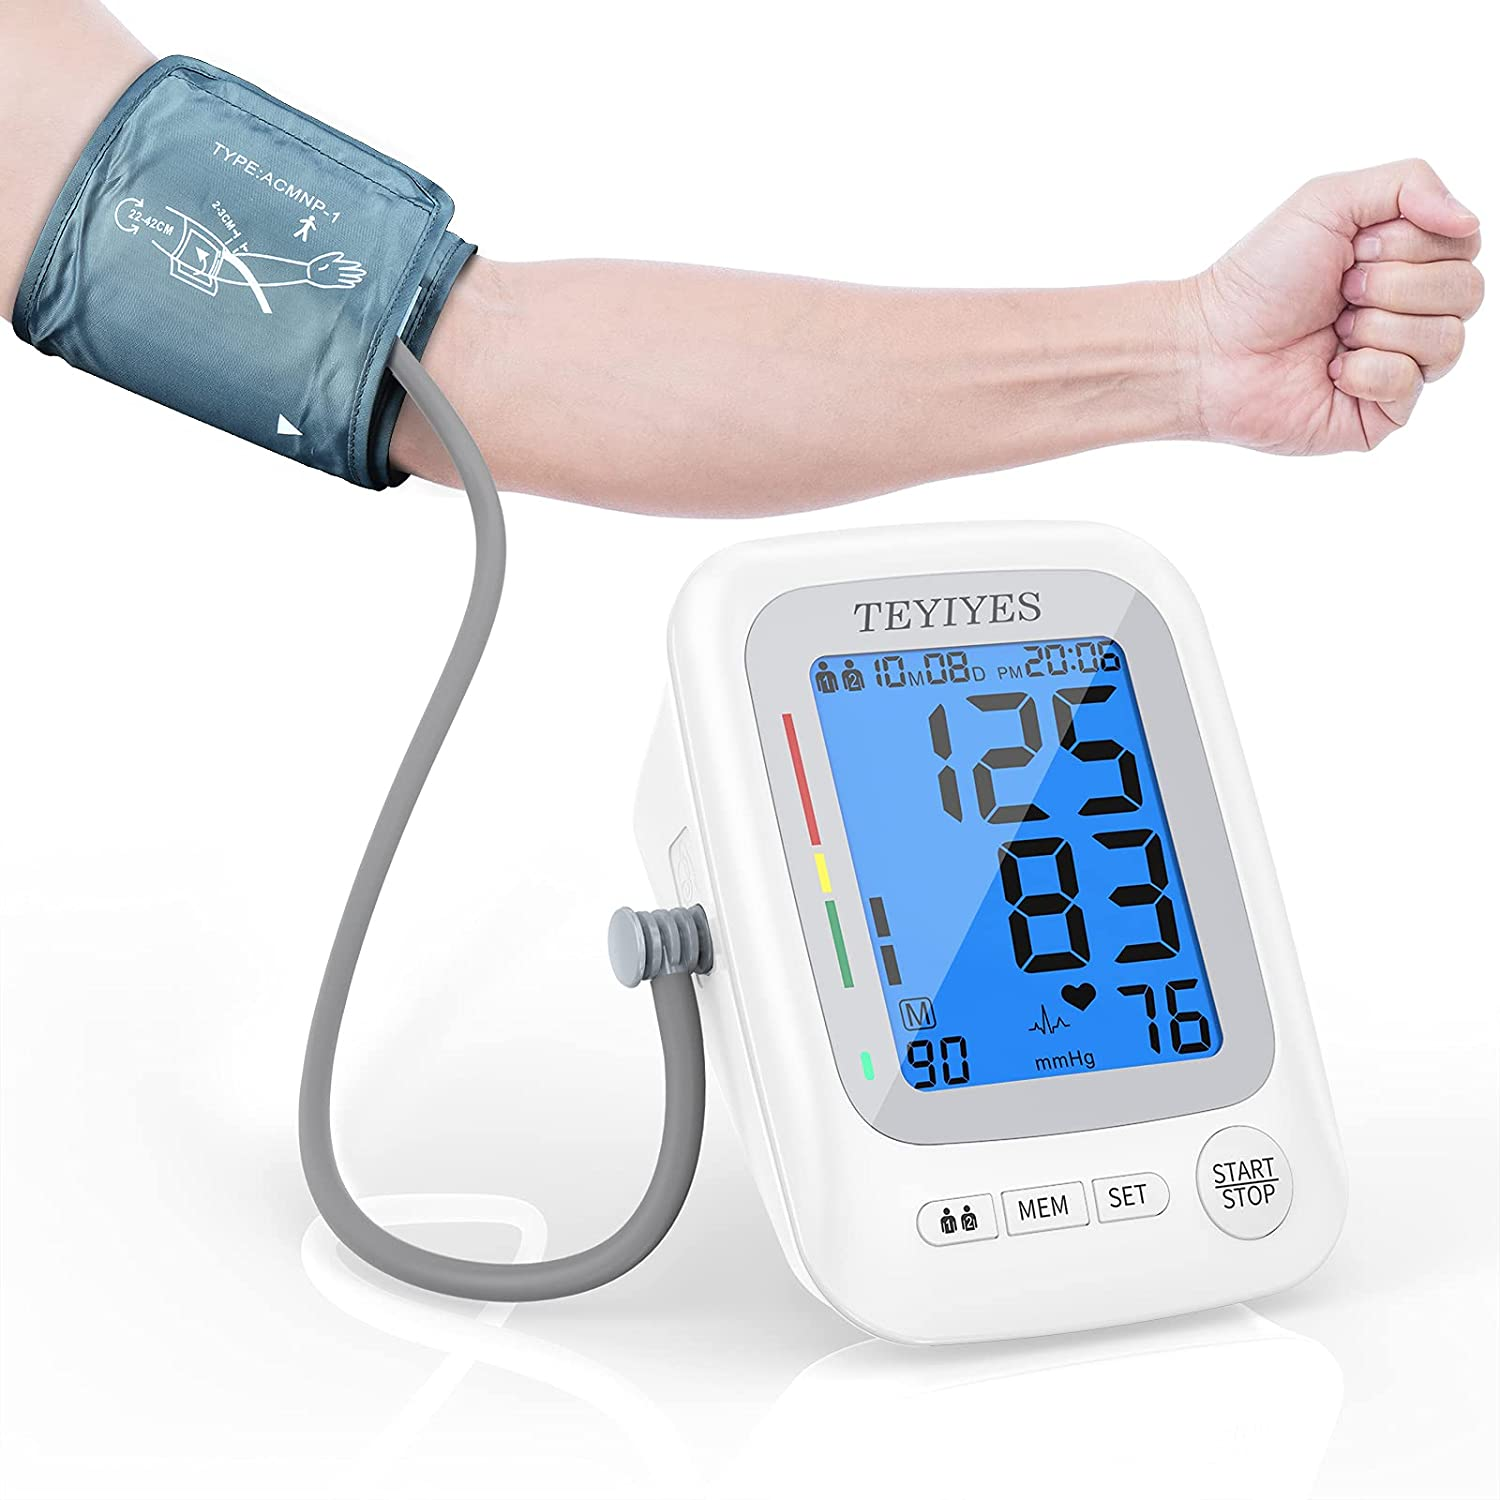 Blood Pressure Cuffs for Home Use TEYIYES Accurate Automatic Digital Upper Arm BP Machine Irregular Heartbeat Detect with Adjustable 8.5-16.5 Inch XL Cuff 2*90 Memory Backlit Extra Large LCD Display